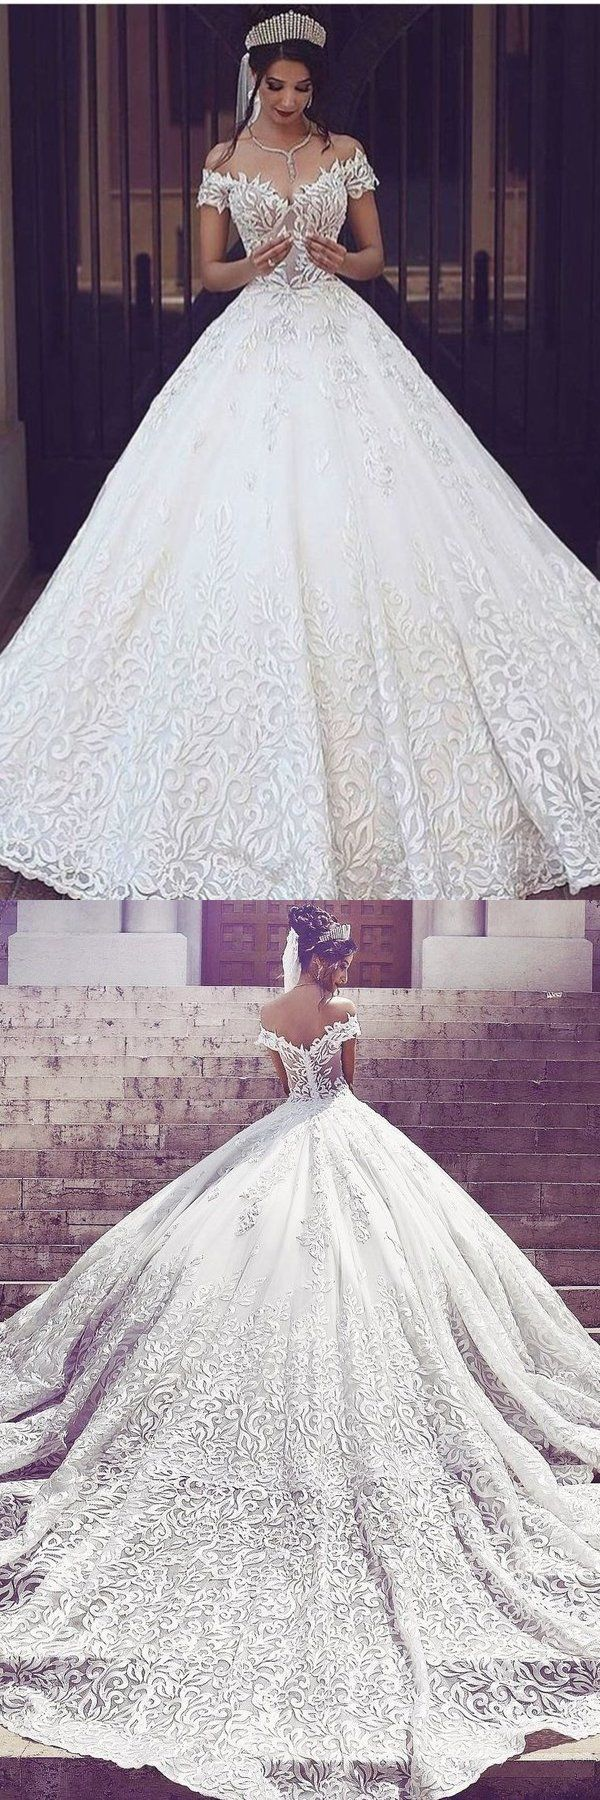 Photo of 2019 Off The Shoulder A Line Wedding Dresses With